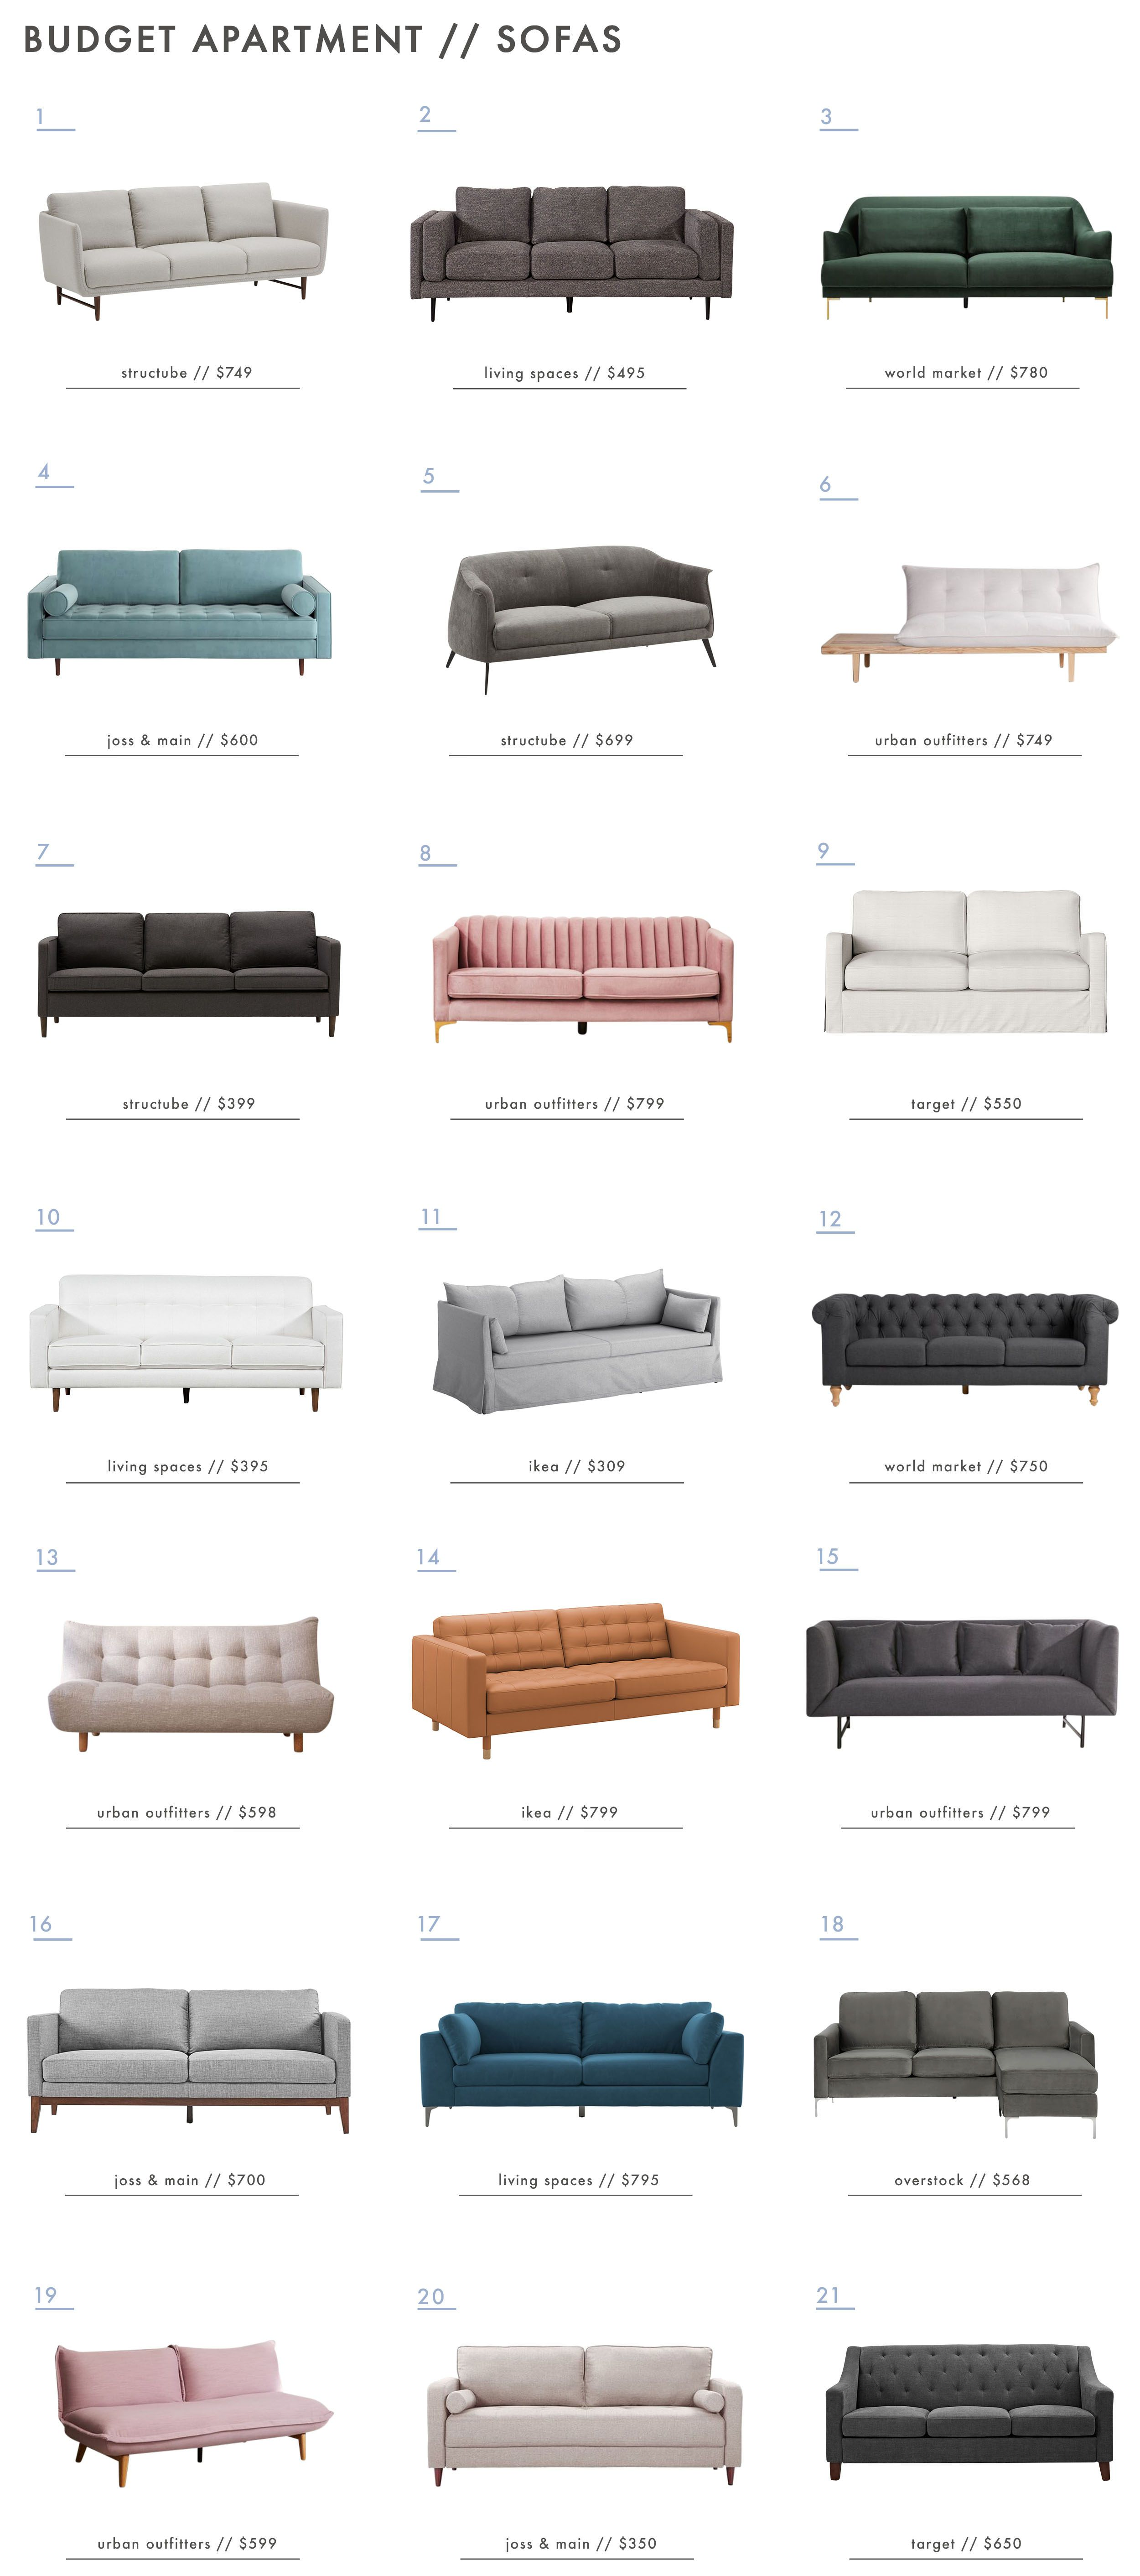 The Ultimate Budget Friendly Living Room Furniture Roundup Affordable Living Room Furniture Budget Friendly Living Room Cheap Living Room Furniture